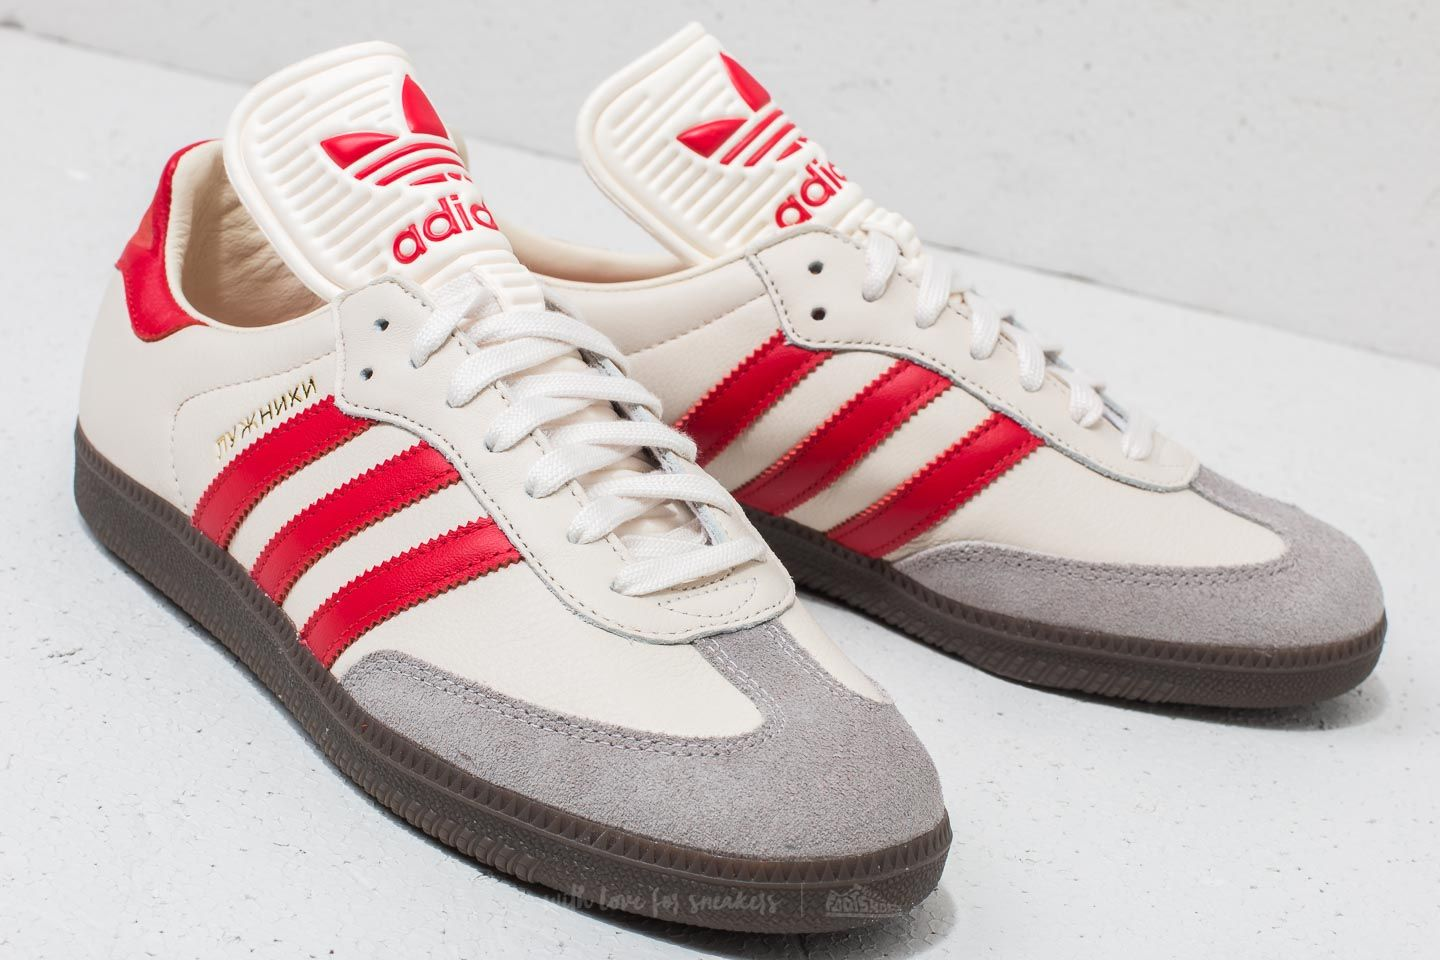 ad0c89c91bbac6 ... italy adidas samba classic og core white scarlett red green night at a  great price 909d1